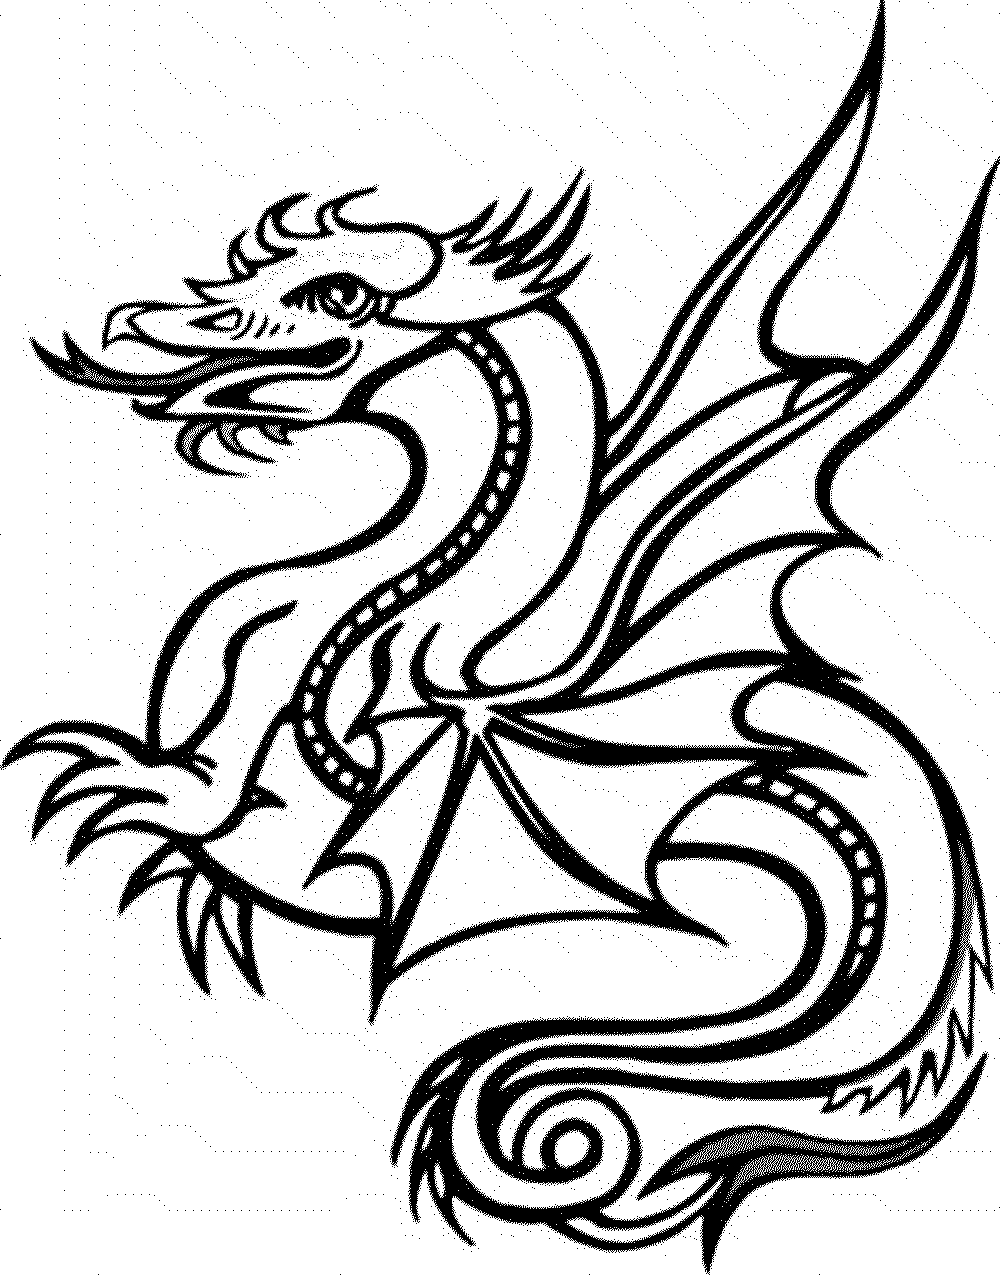 dragon coloring pages top 25 free printable dragon coloring pages online dragon coloring pages